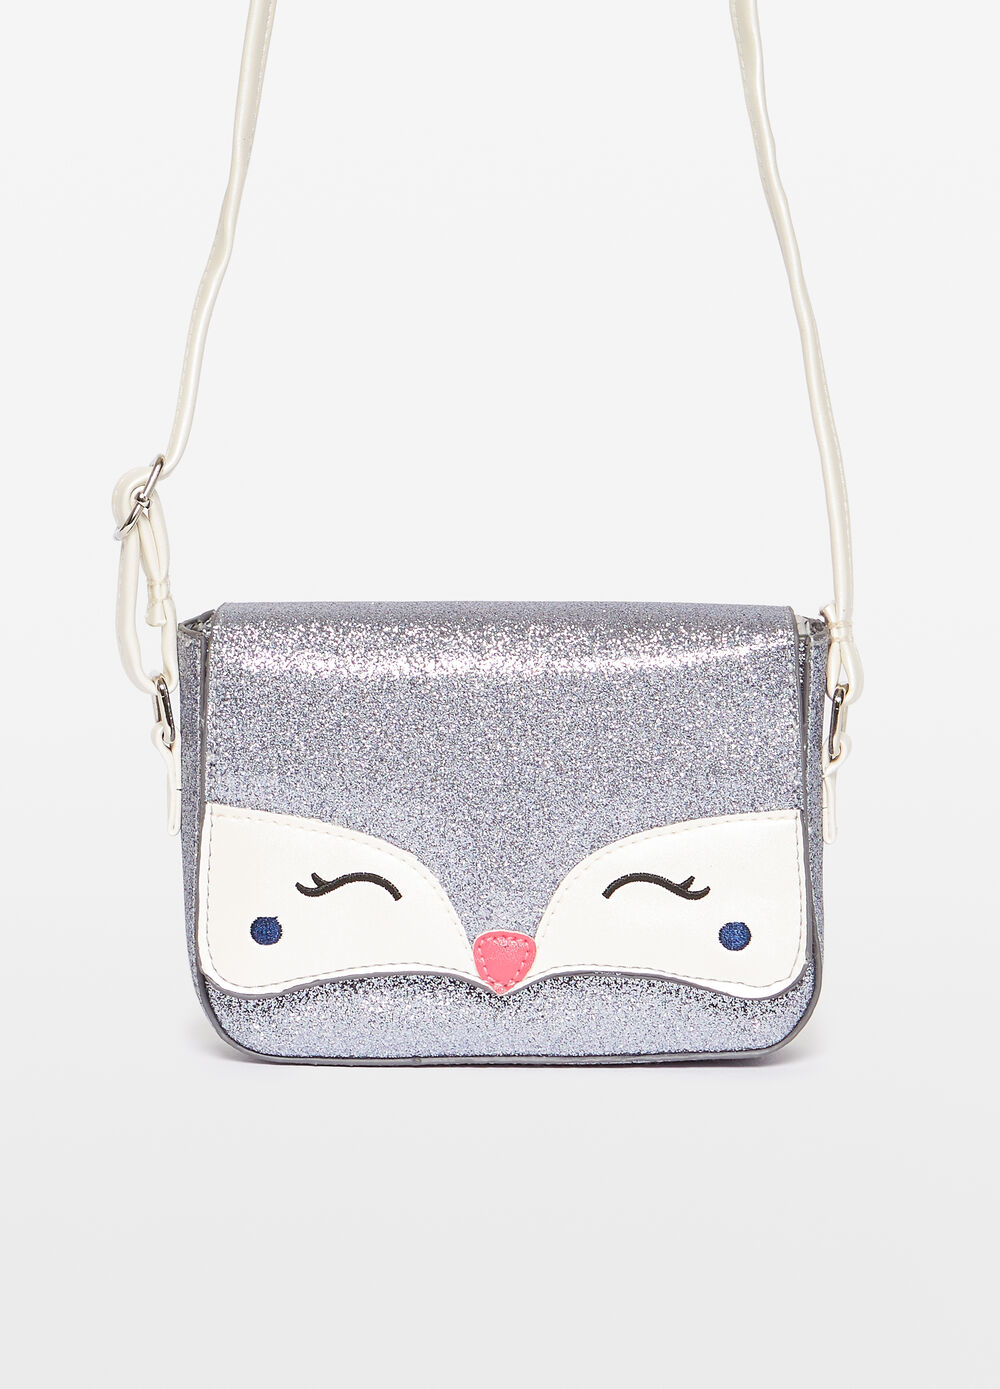 Glitter shoulder bag with embroidery